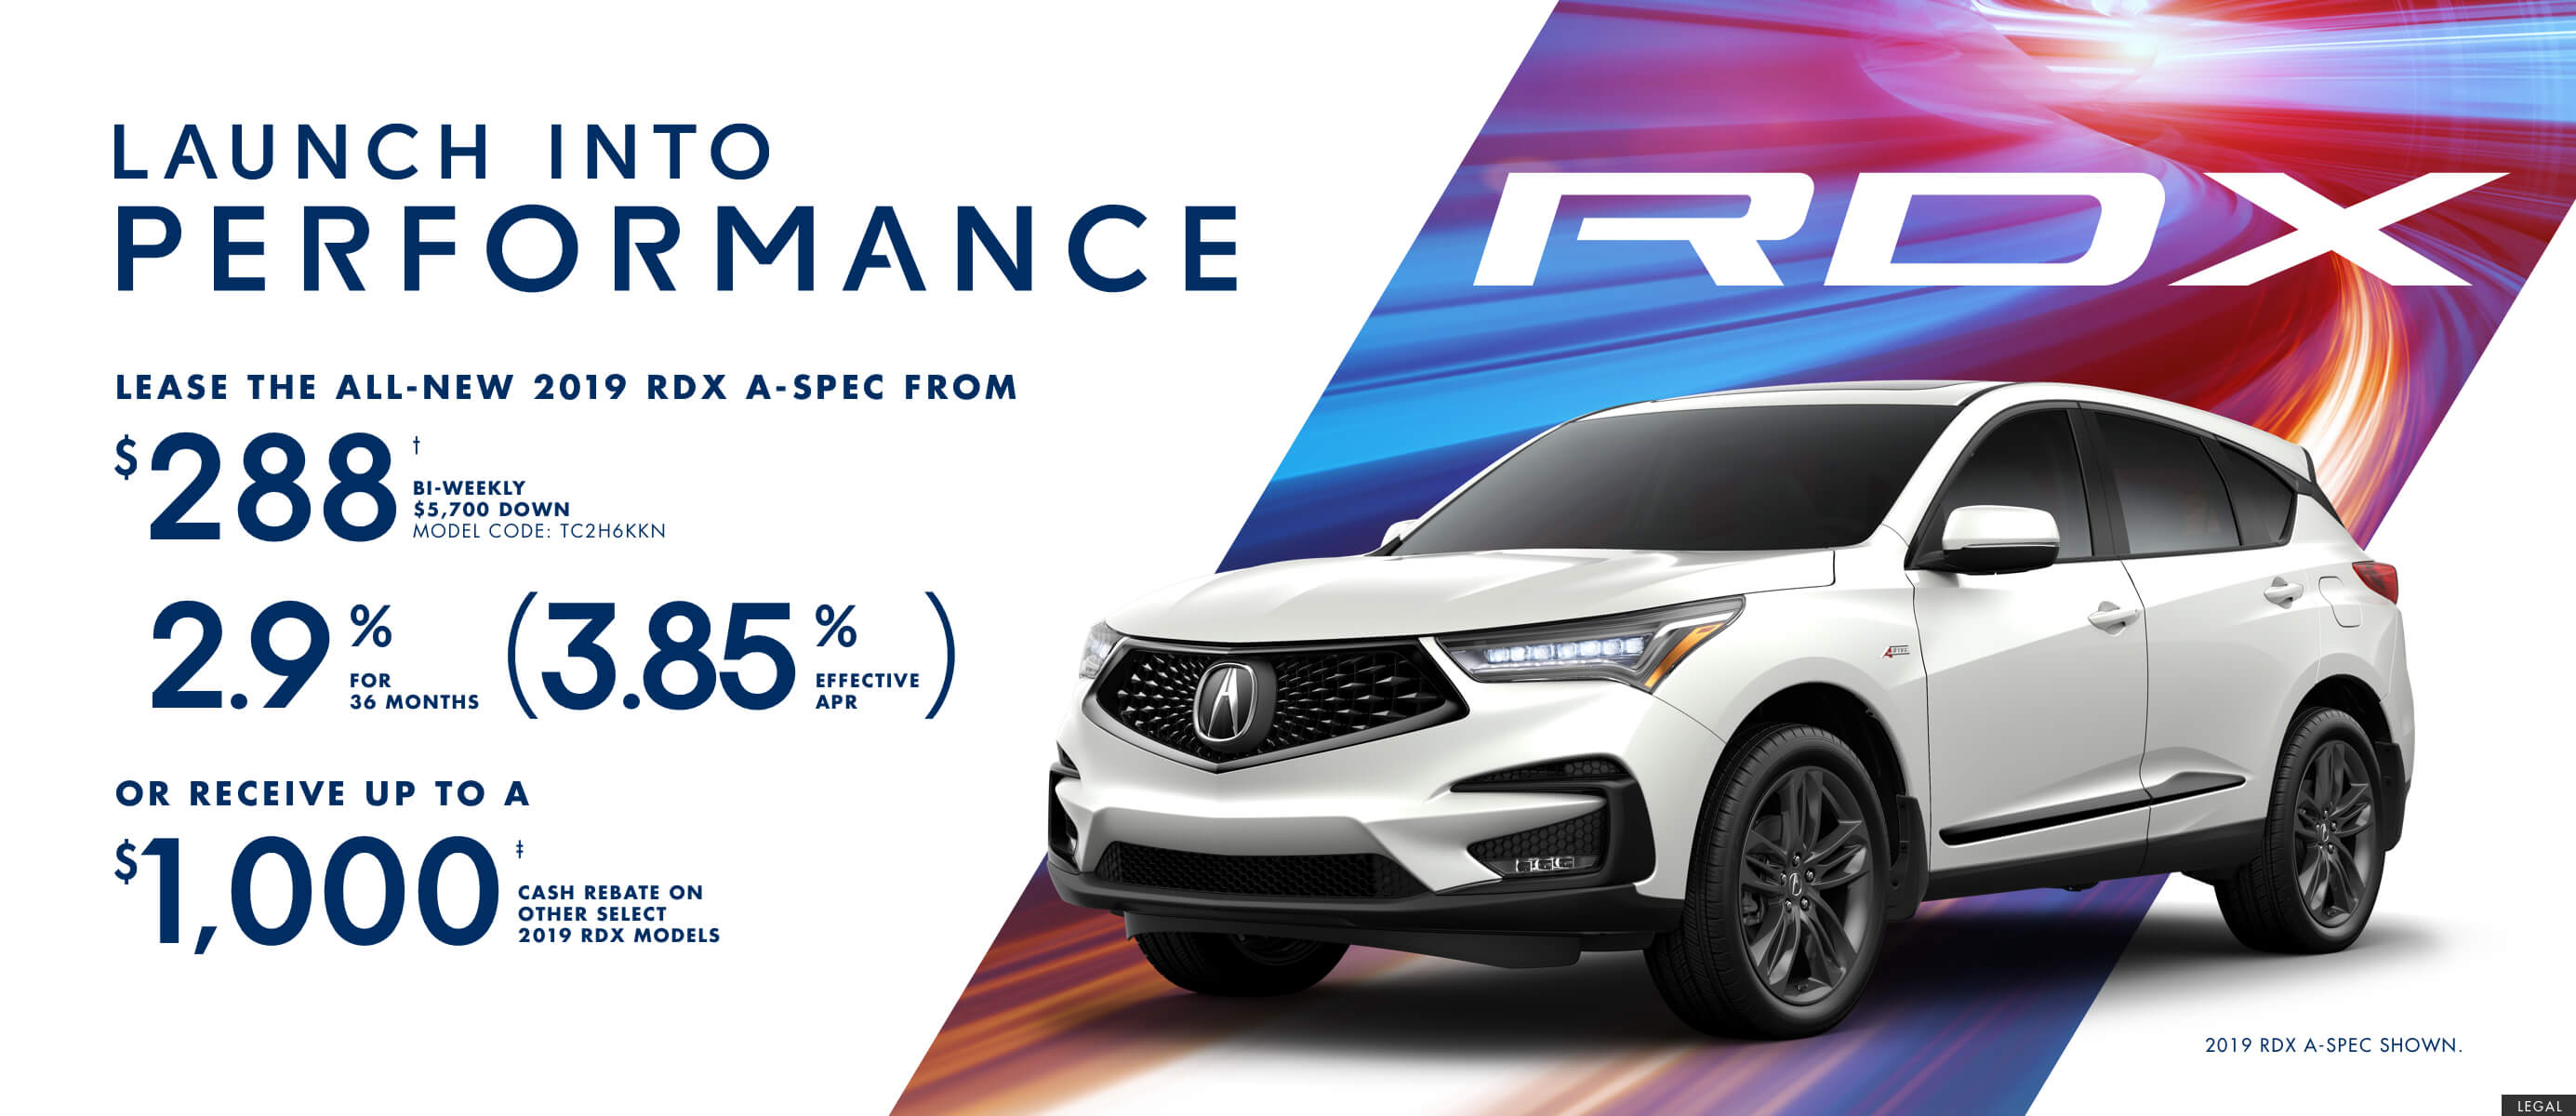 All-New 2019 Acura RDX | Launch Into Performance